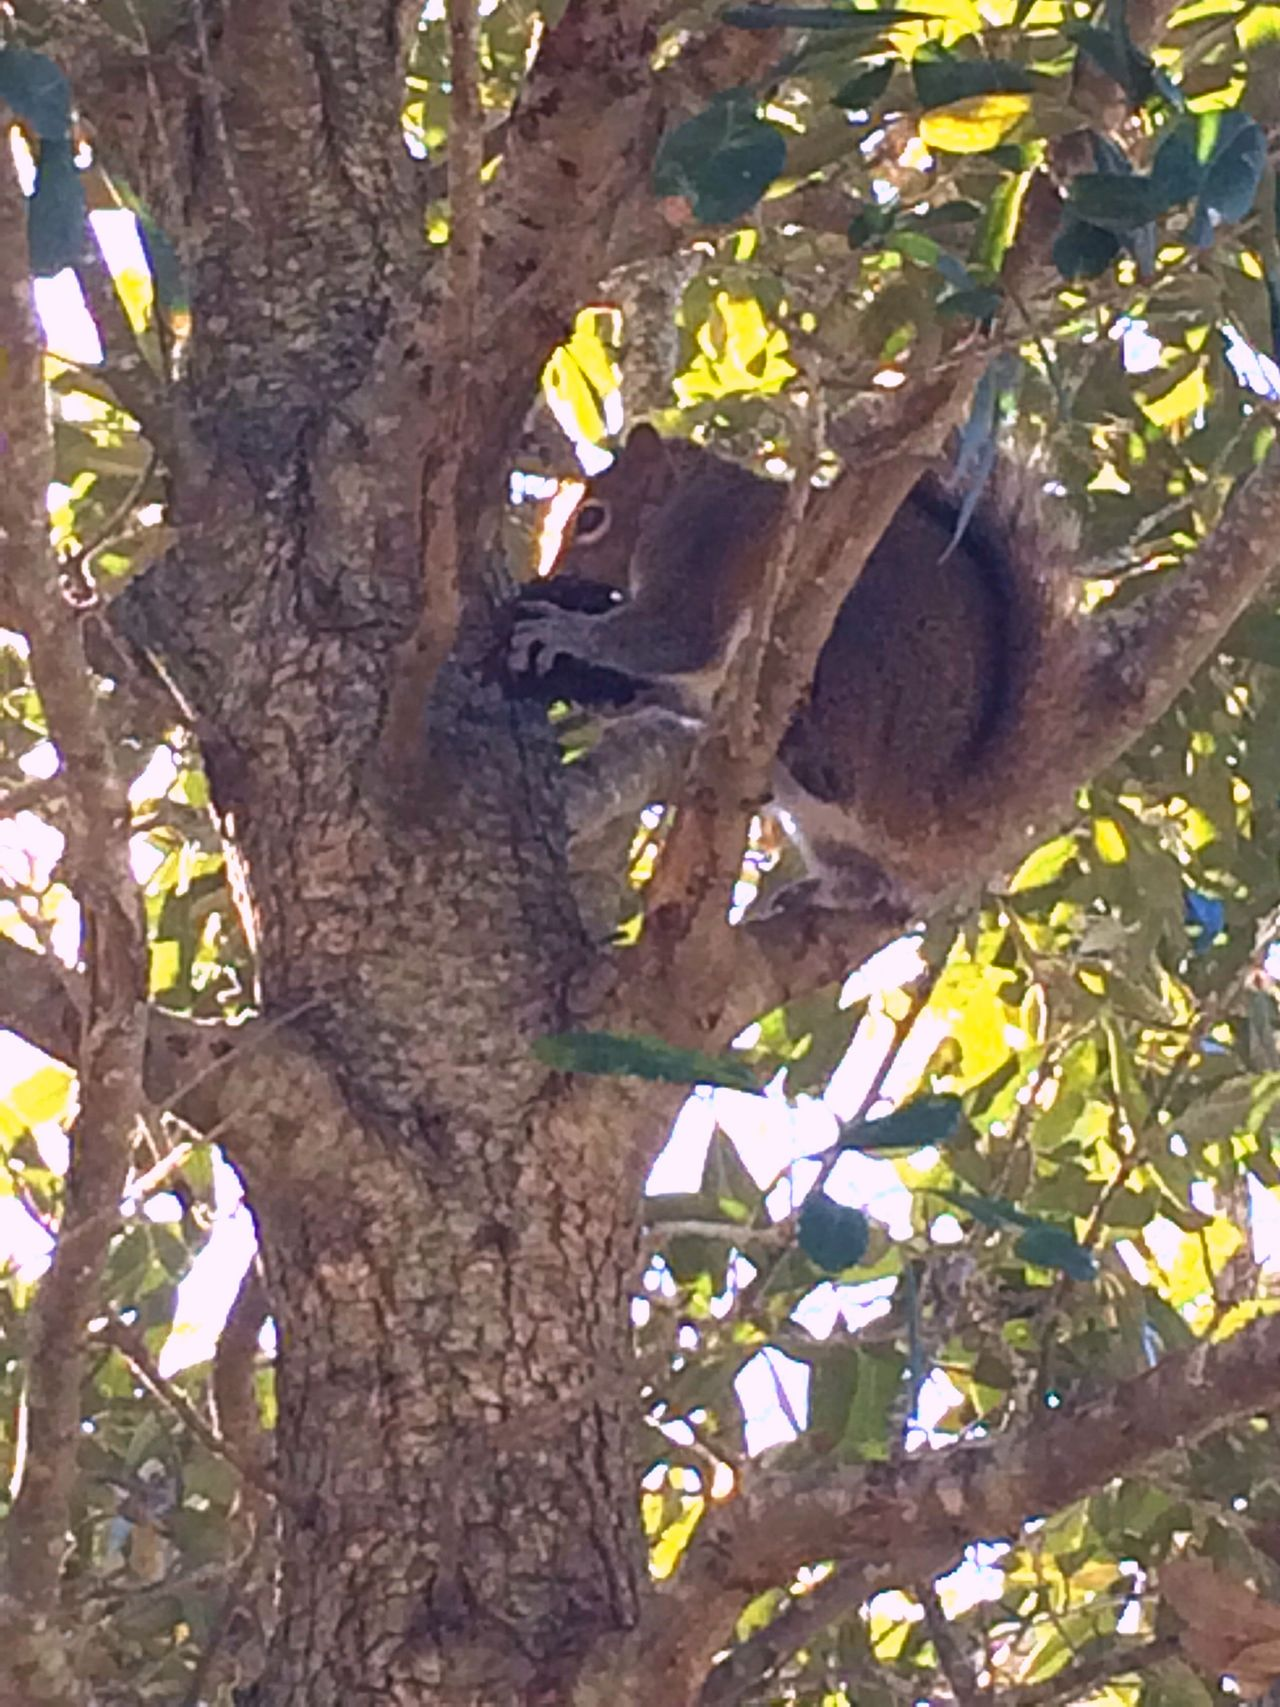 Squirrel In Tree Squirrel Eating A Nut Tree Time Lunchtime For Squirrel Animal In Nature RookieCam Nuts_about_squirrels Do You Mind Munching Down In A Tree